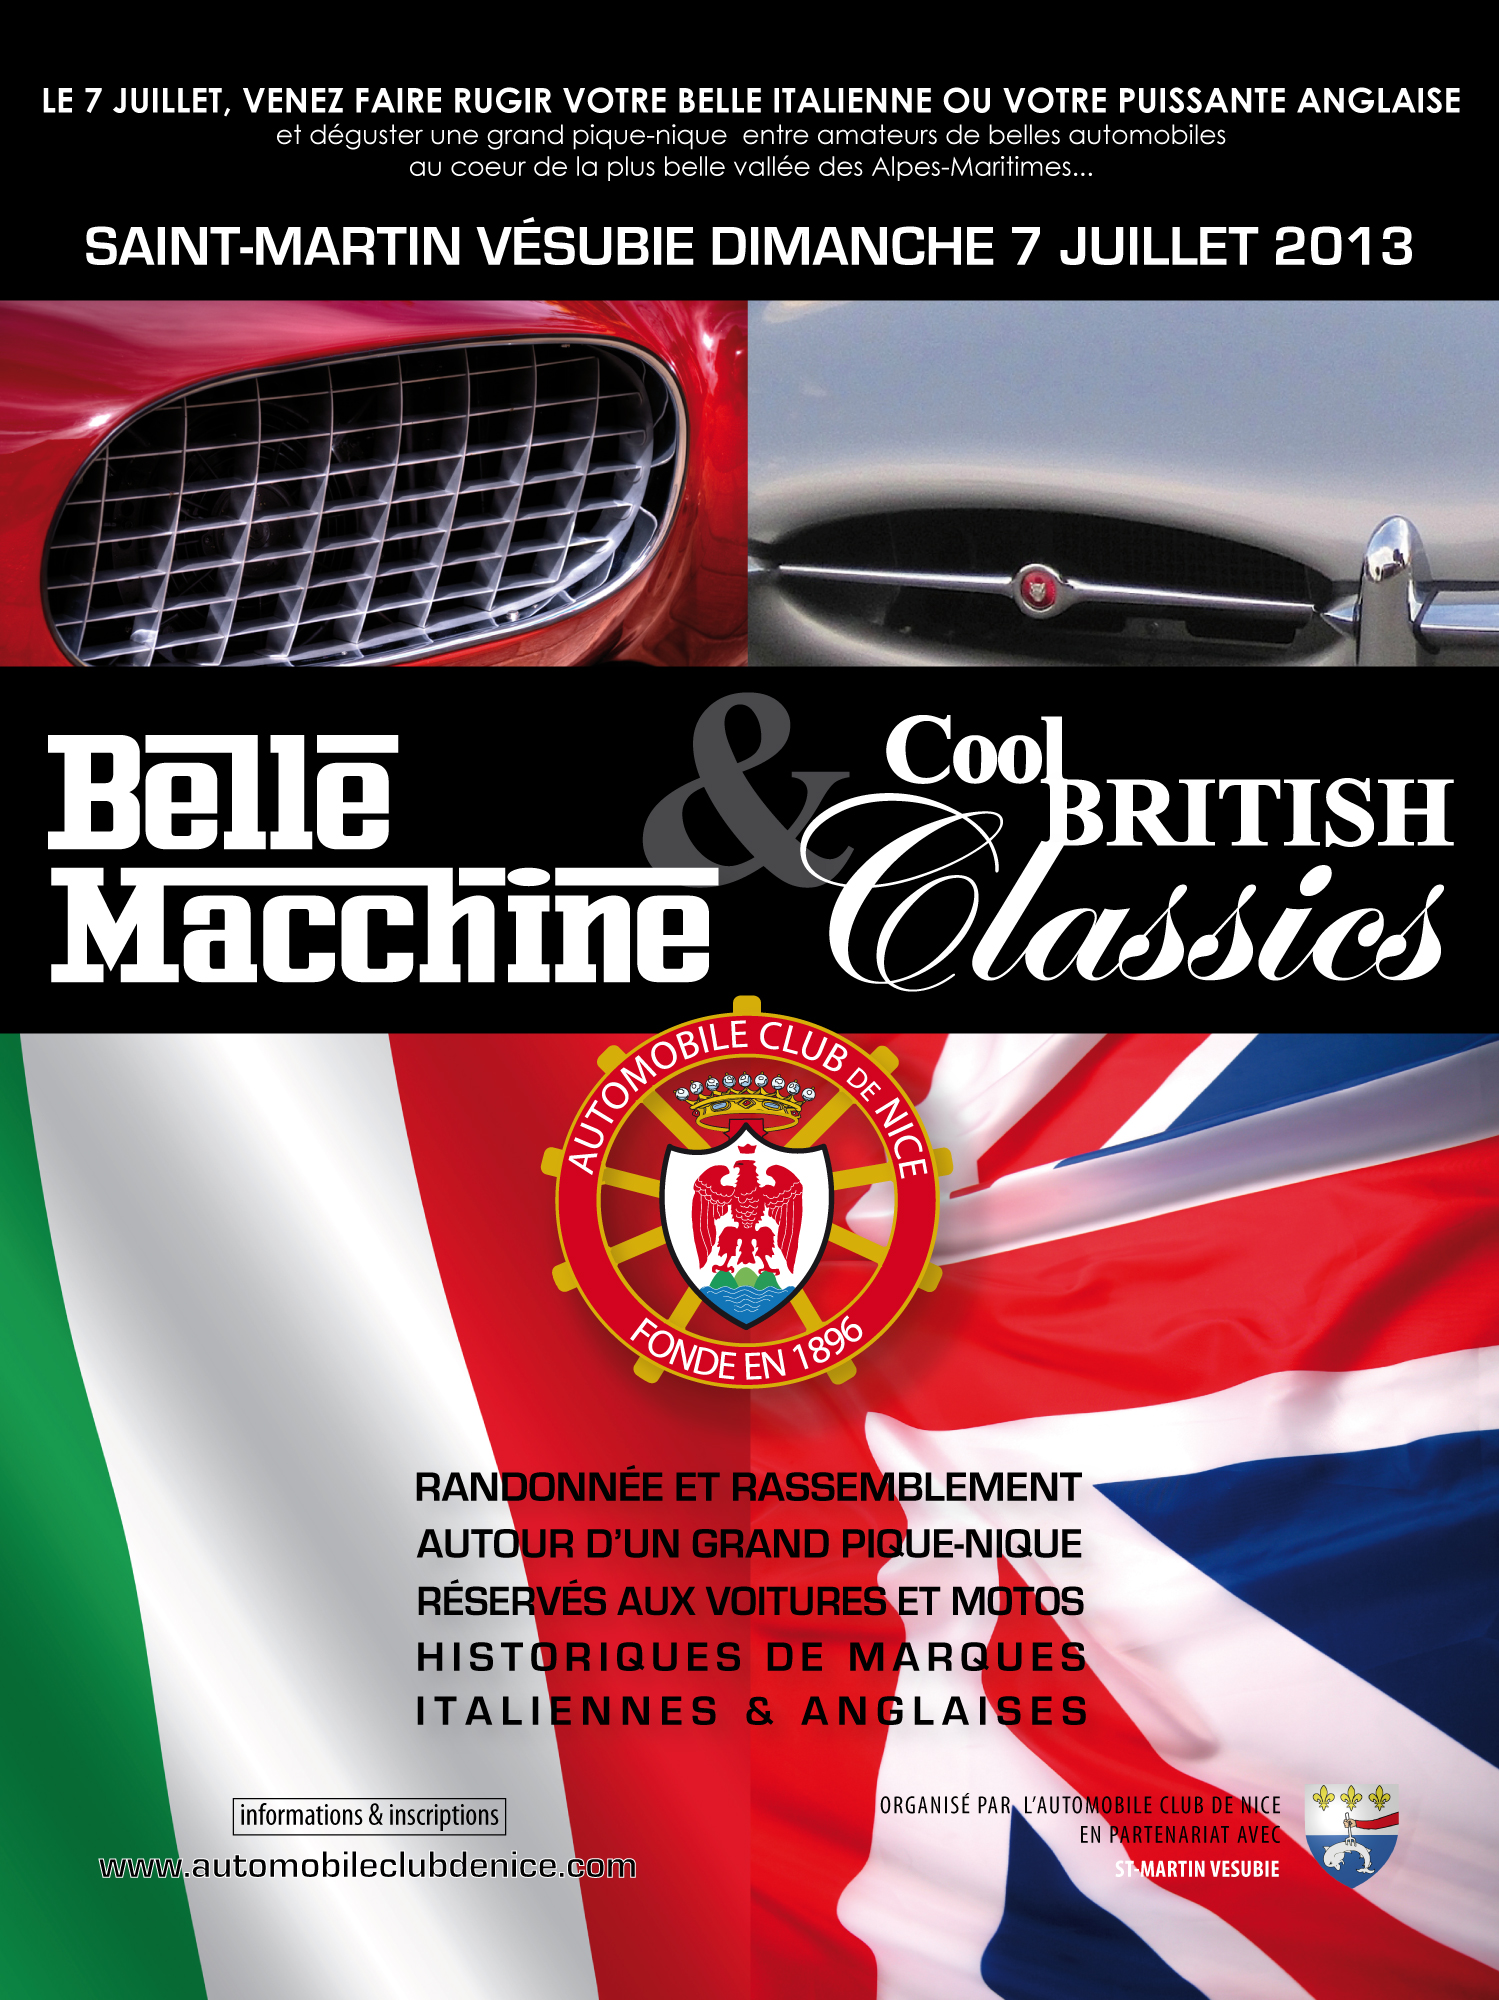 [07/07/13][06]Belle Macchine & Cool British Classics  Visuel-flyer-belle-macchine--cool-classics